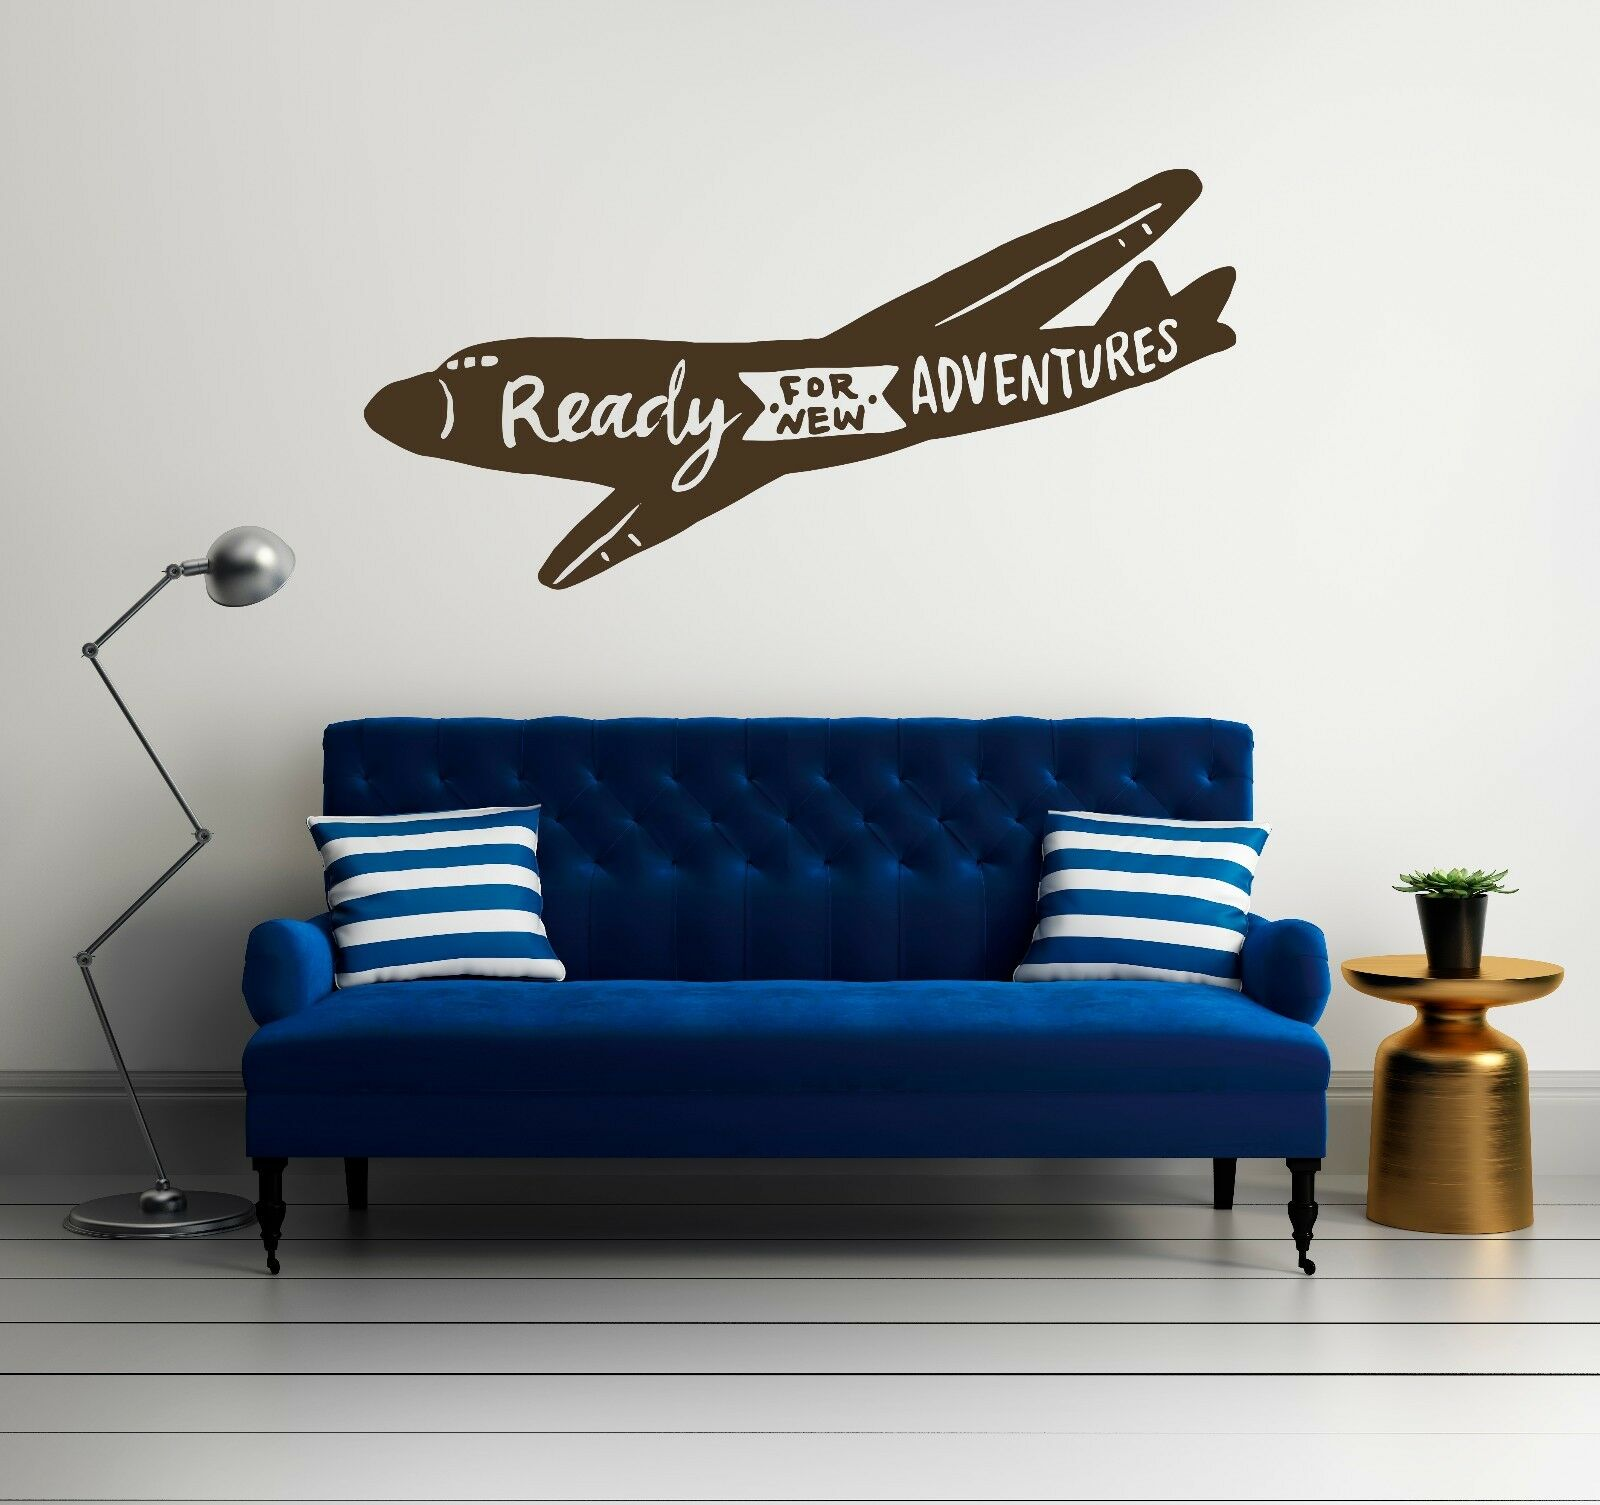 Ready For New Adventures  - Travel Quote -  Wall Decal Decor For Home Airplane